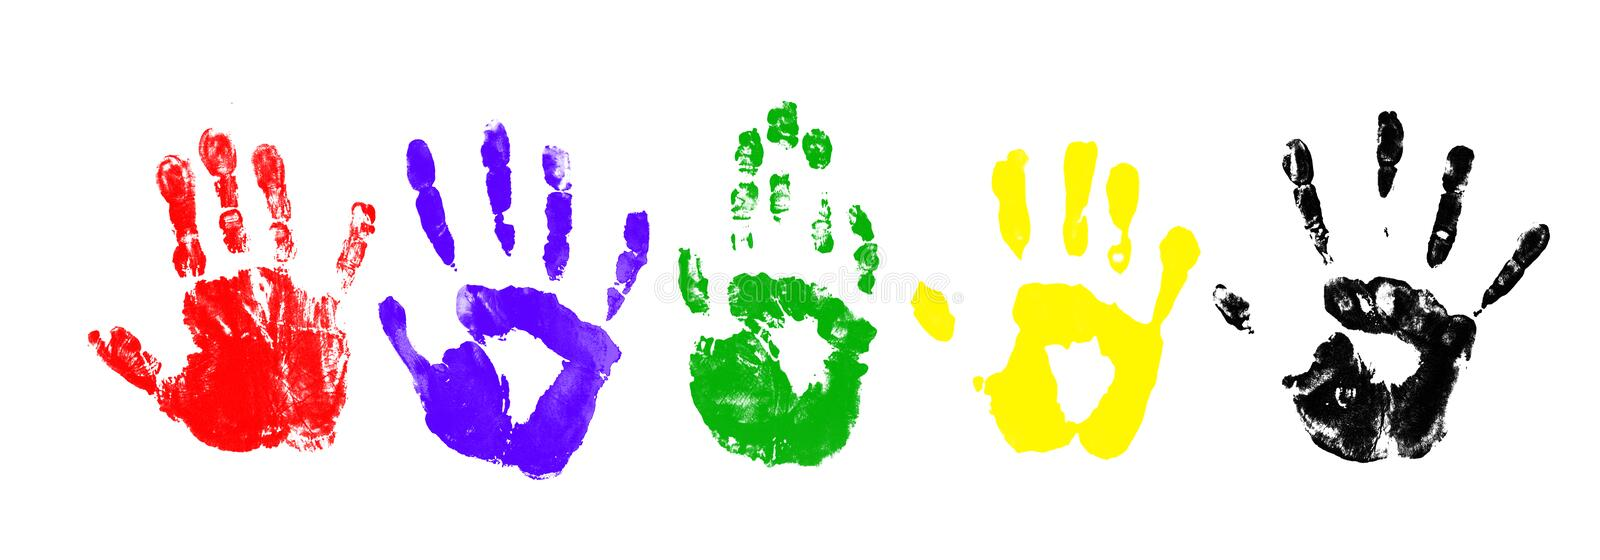 Download Handprints stock image. Image of dirty, colored, individuality - 25519861